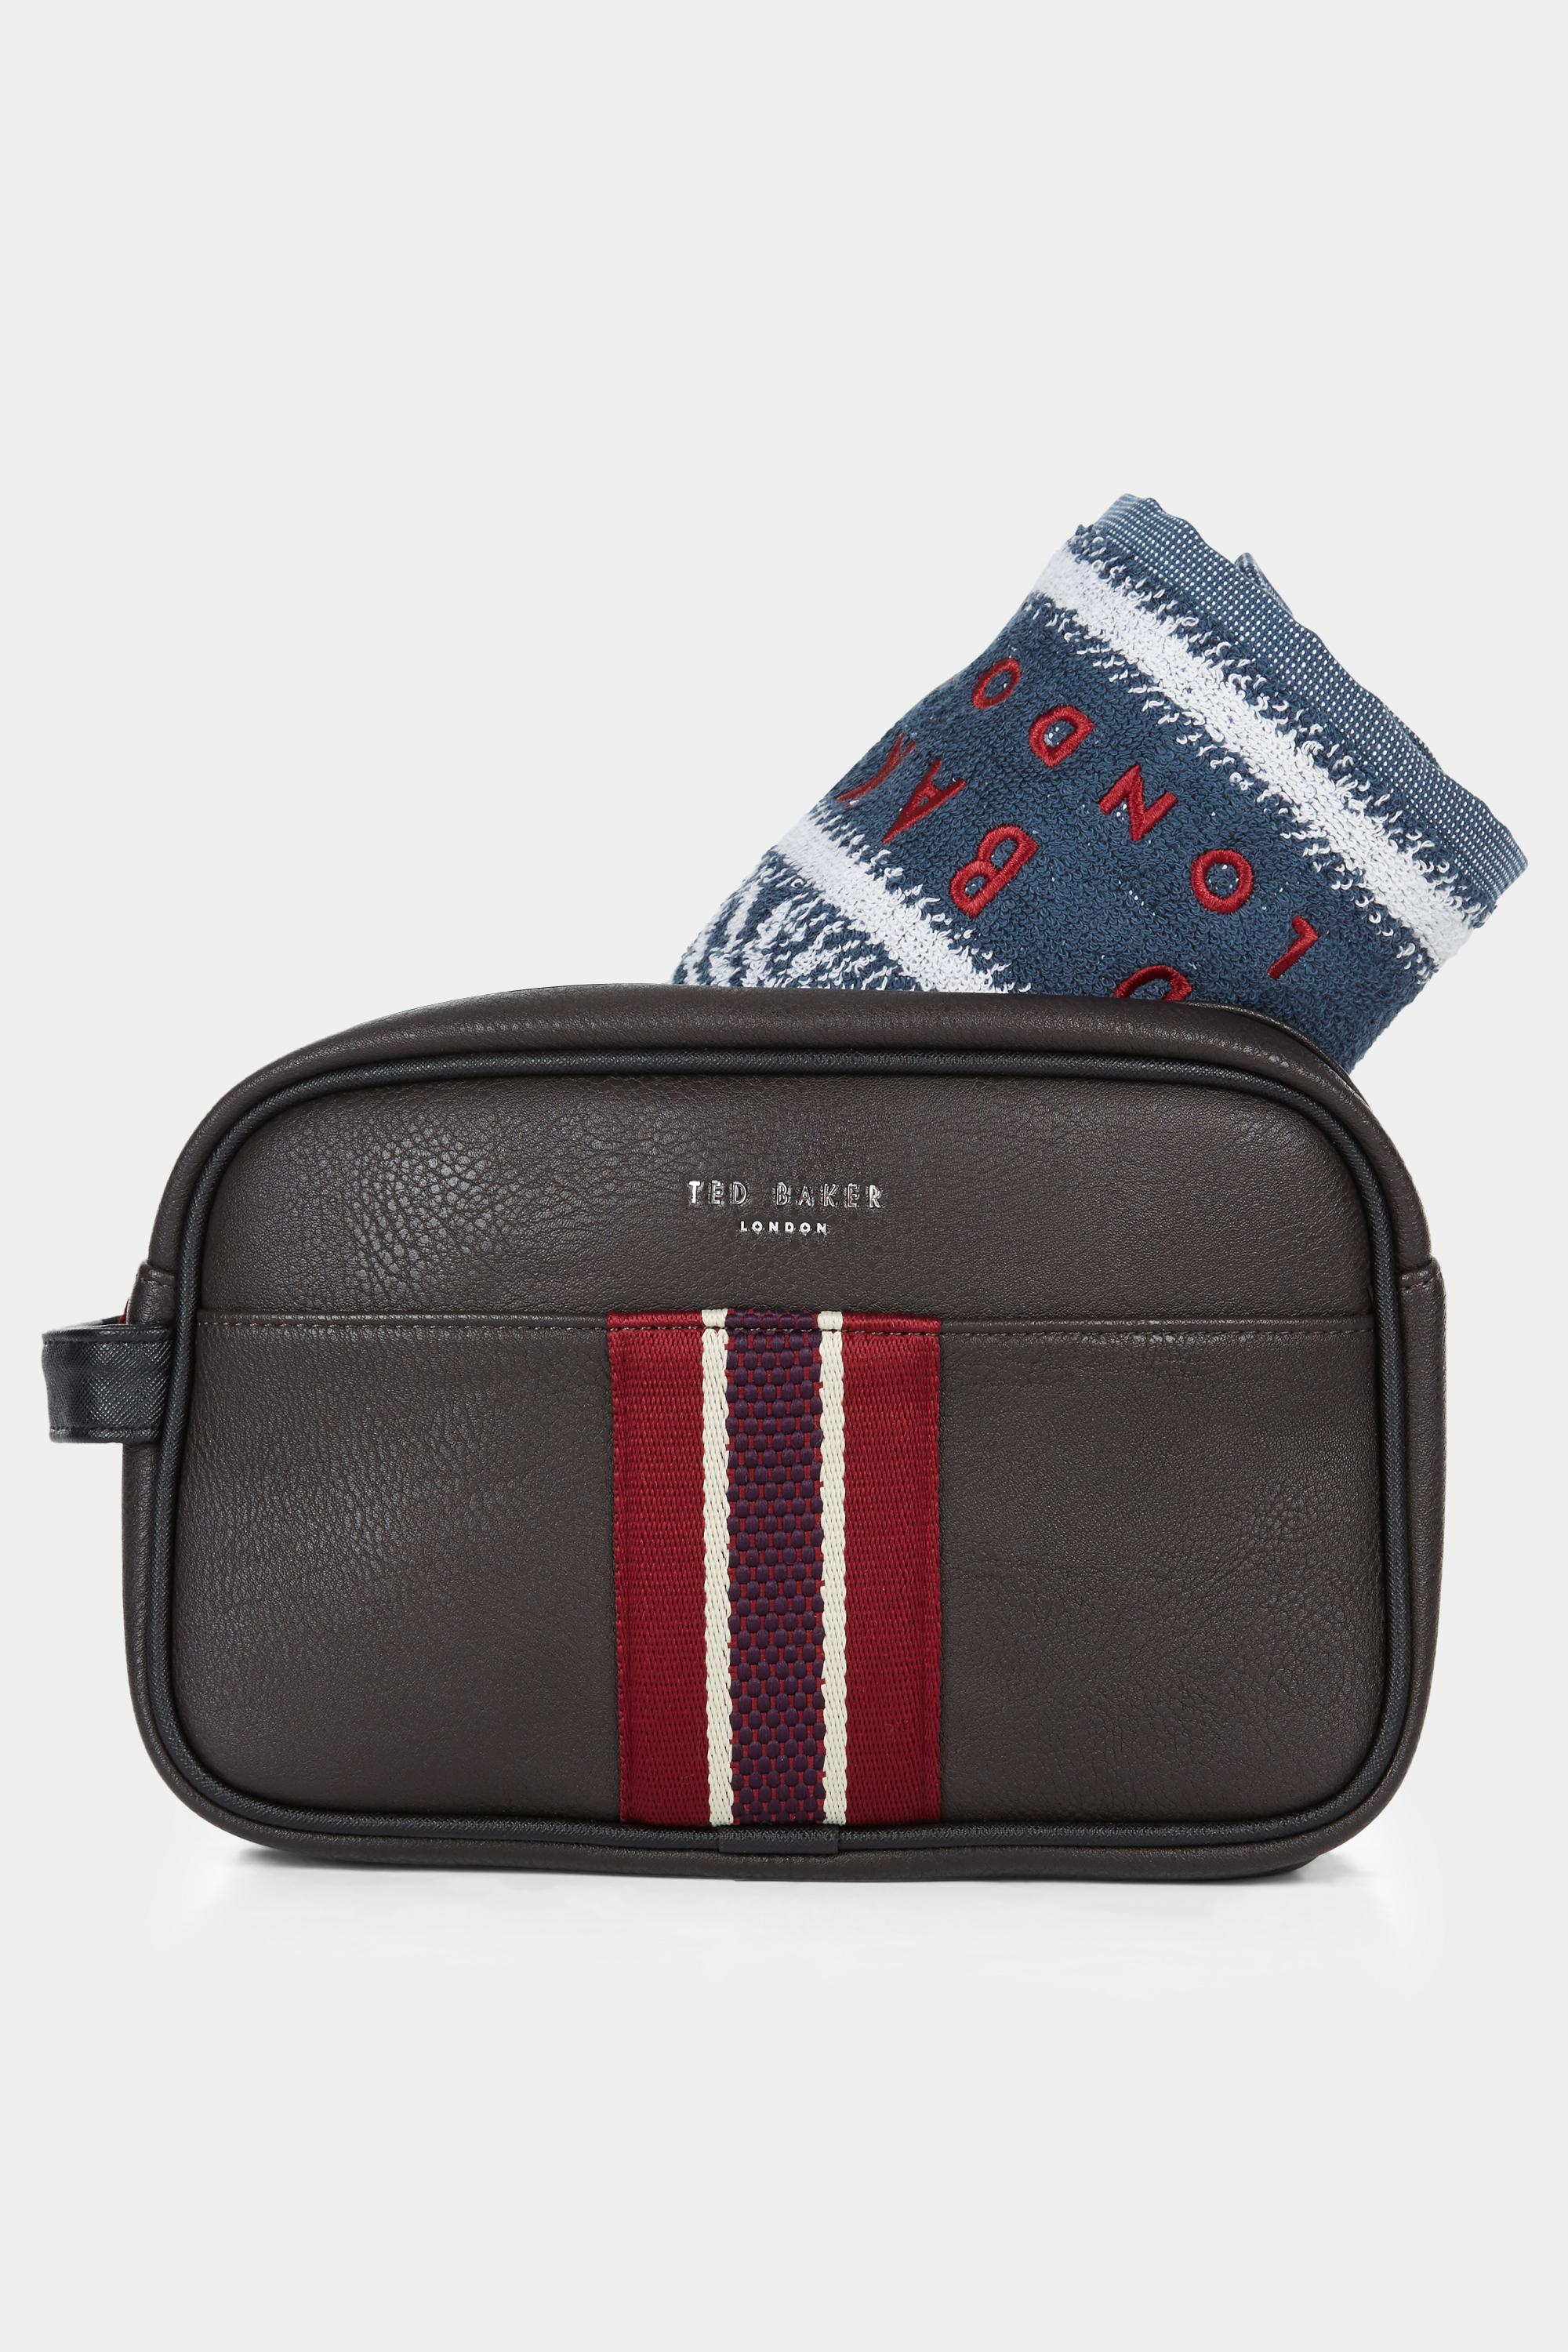 2173c62ee Ted Baker - Brown Smitset Washbag Chocolate With Towel for Men - Lyst. View  fullscreen